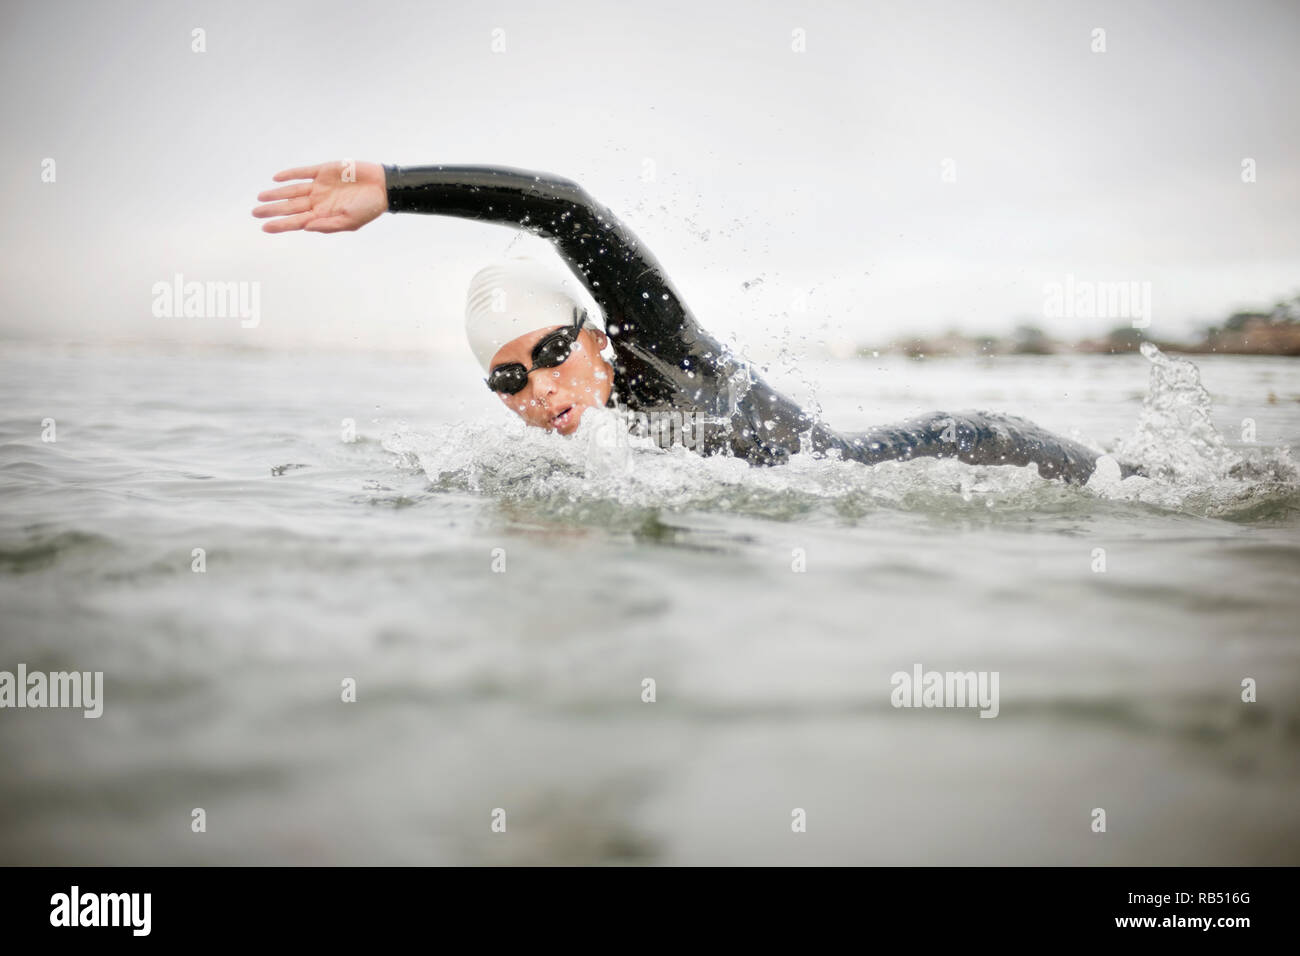 Young woman wearing a swimming cap, swimming goggles and a wetsuit swims freestyle in the open water of the sea. - Stock Image